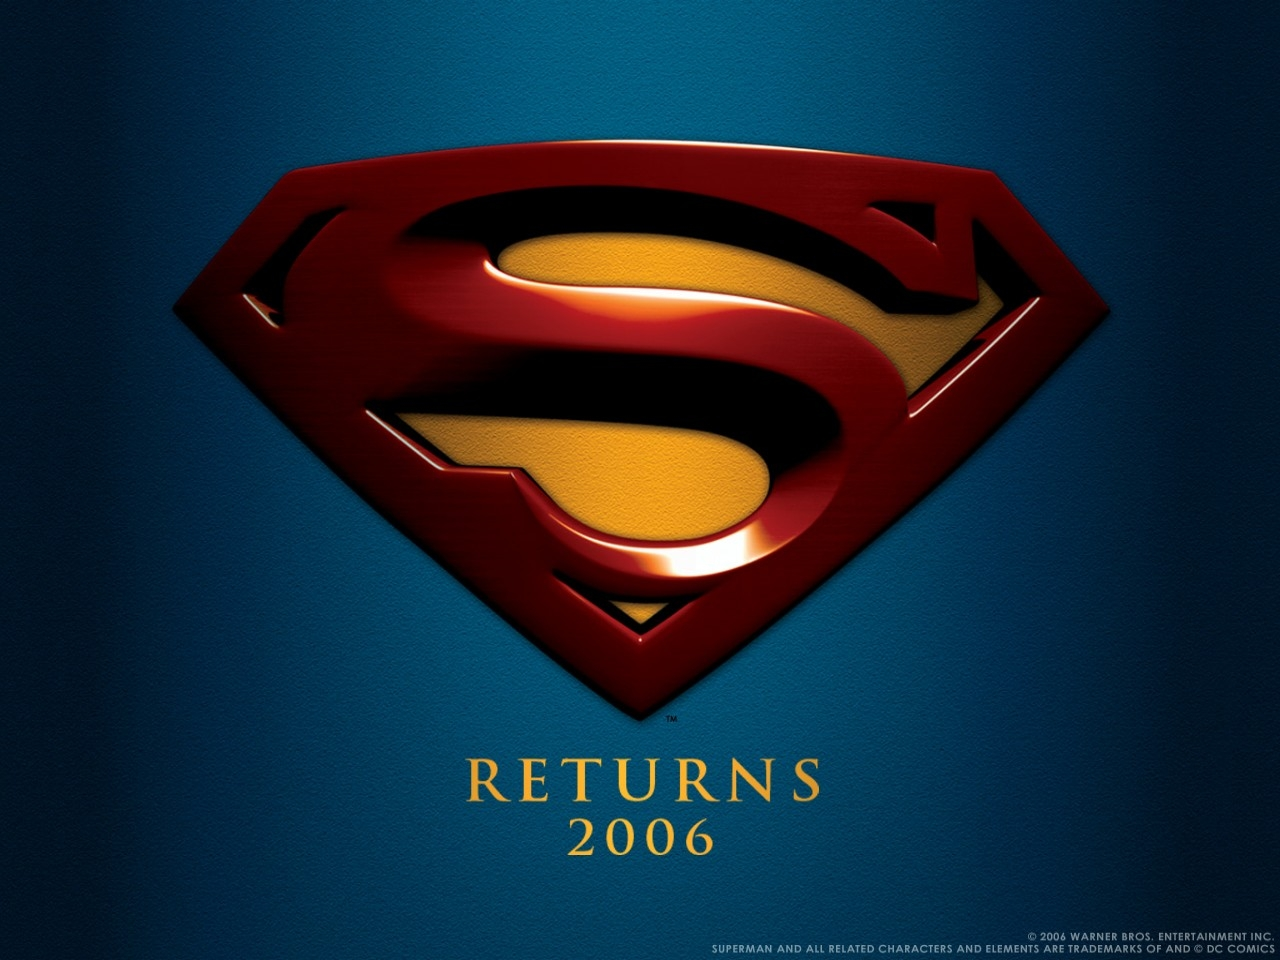 Wallpaper del film Superman Returns con il logo del film